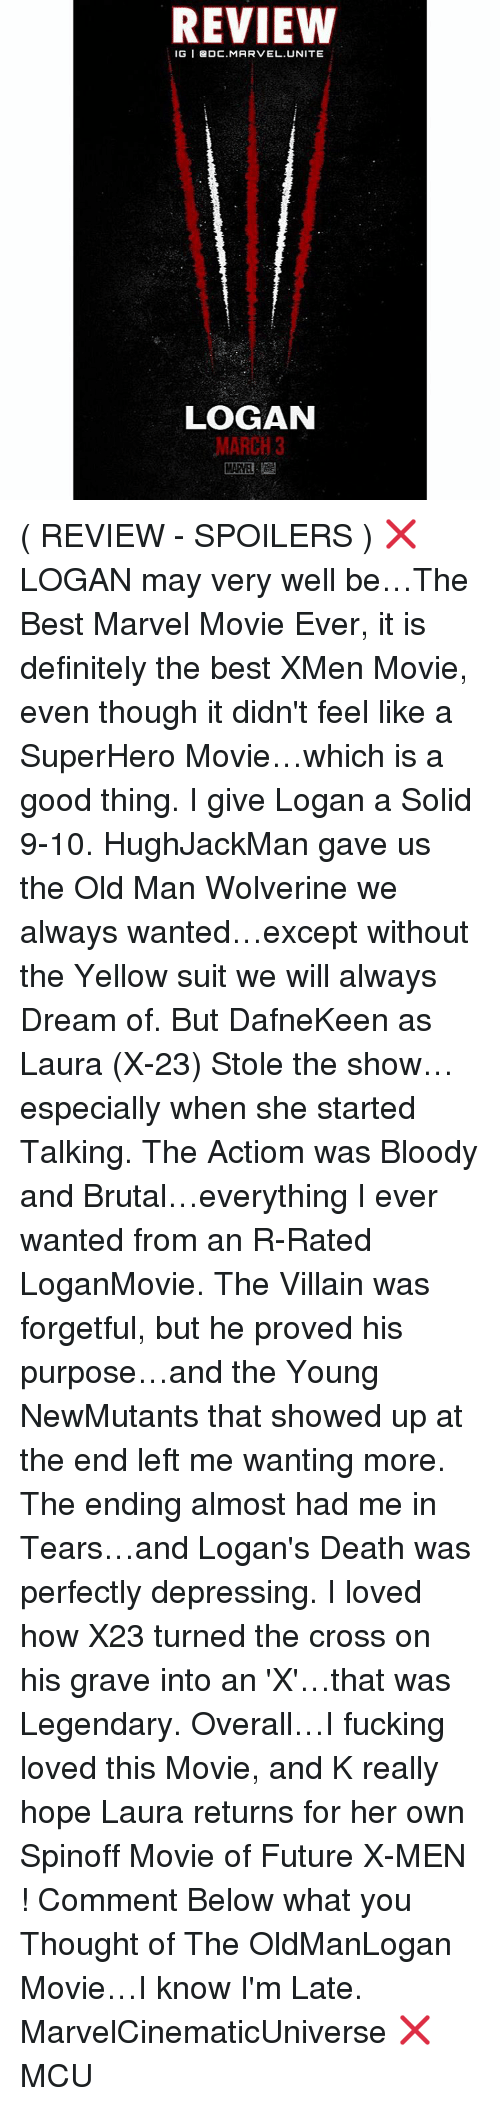 stole the show: REVIEW  IGI BDC. MARVEL UNITE  LOGAN  MARCH 3 ( REVIEW - SPOILERS ) ❌ LOGAN may very well be…The Best Marvel Movie Ever, it is definitely the best XMen Movie, even though it didn't feel like a SuperHero Movie…which is a good thing. I give Logan a Solid 9-10. HughJackMan gave us the Old Man Wolverine we always wanted…except without the Yellow suit we will always Dream of. But DafneKeen as Laura (X-23) Stole the show…especially when she started Talking. The Actiom was Bloody and Brutal…everything I ever wanted from an R-Rated LoganMovie. The Villain was forgetful, but he proved his purpose…and the Young NewMutants that showed up at the end left me wanting more. The ending almost had me in Tears…and Logan's Death was perfectly depressing. I loved how X23 turned the cross on his grave into an 'X'…that was Legendary. Overall…I fucking loved this Movie, and K really hope Laura returns for her own Spinoff Movie of Future X-MEN ! Comment Below what you Thought of The OldManLogan Movie…I know I'm Late. MarvelCinematicUniverse ❌ MCU